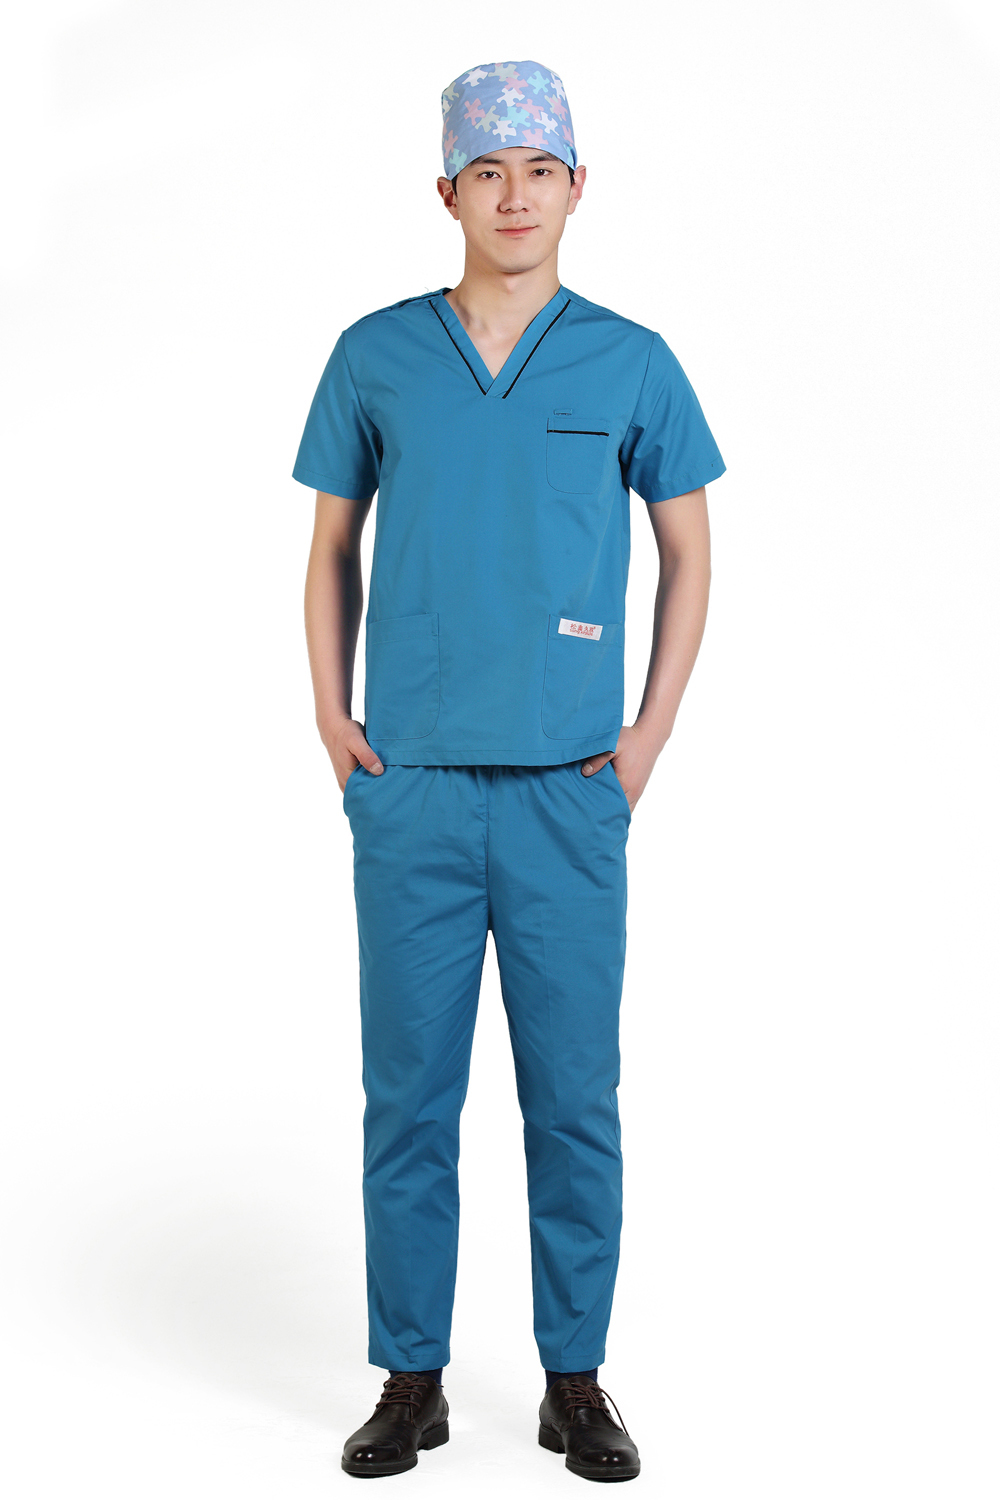 2015 OEM uniformes hospital scrub sets hospital workwear medical scrub suit hot sale for summer(China (Mainland))